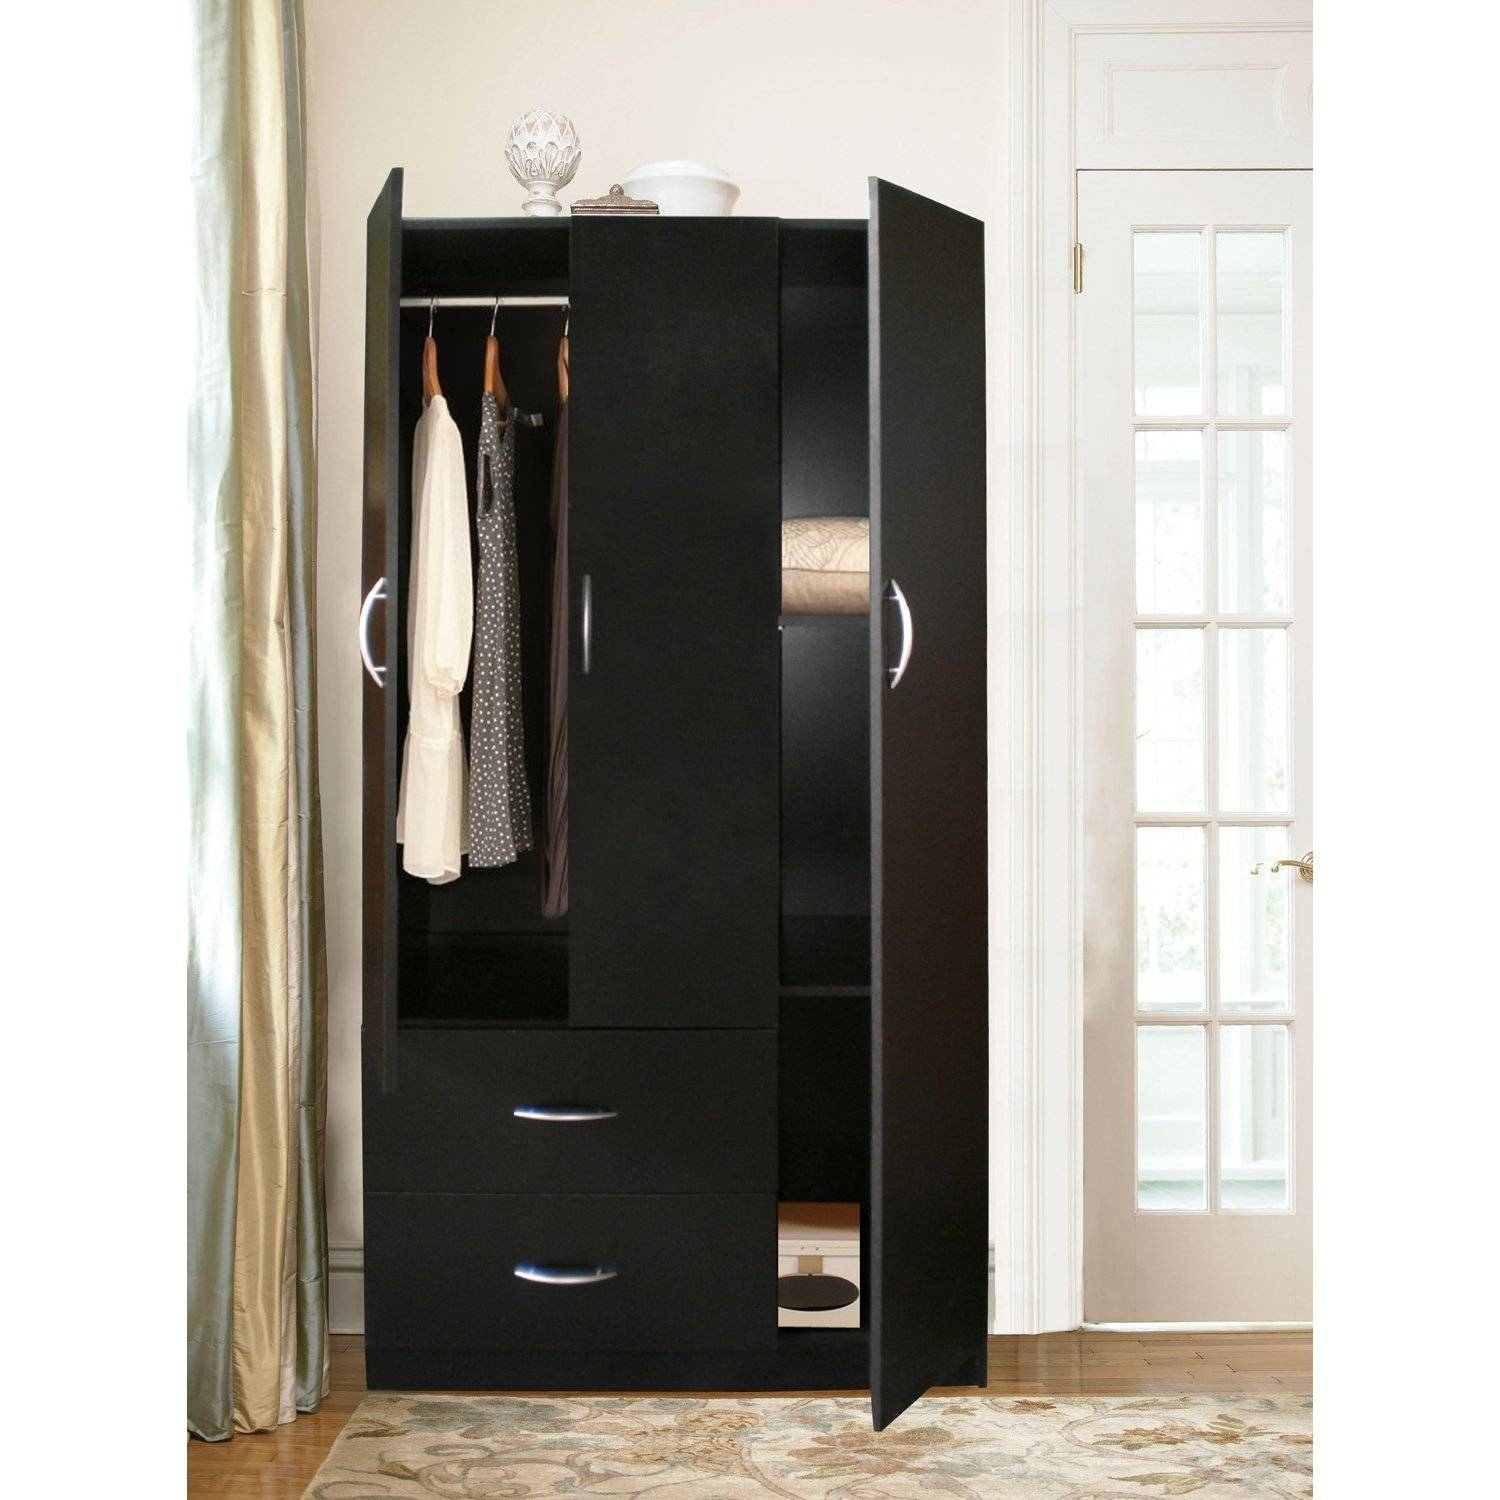 Furniture: Fancy Wardrobe Armoire For Wardrobe Organizer Idea with 3 Door Wardrobe With Drawers And Shelves (Image 11 of 30)